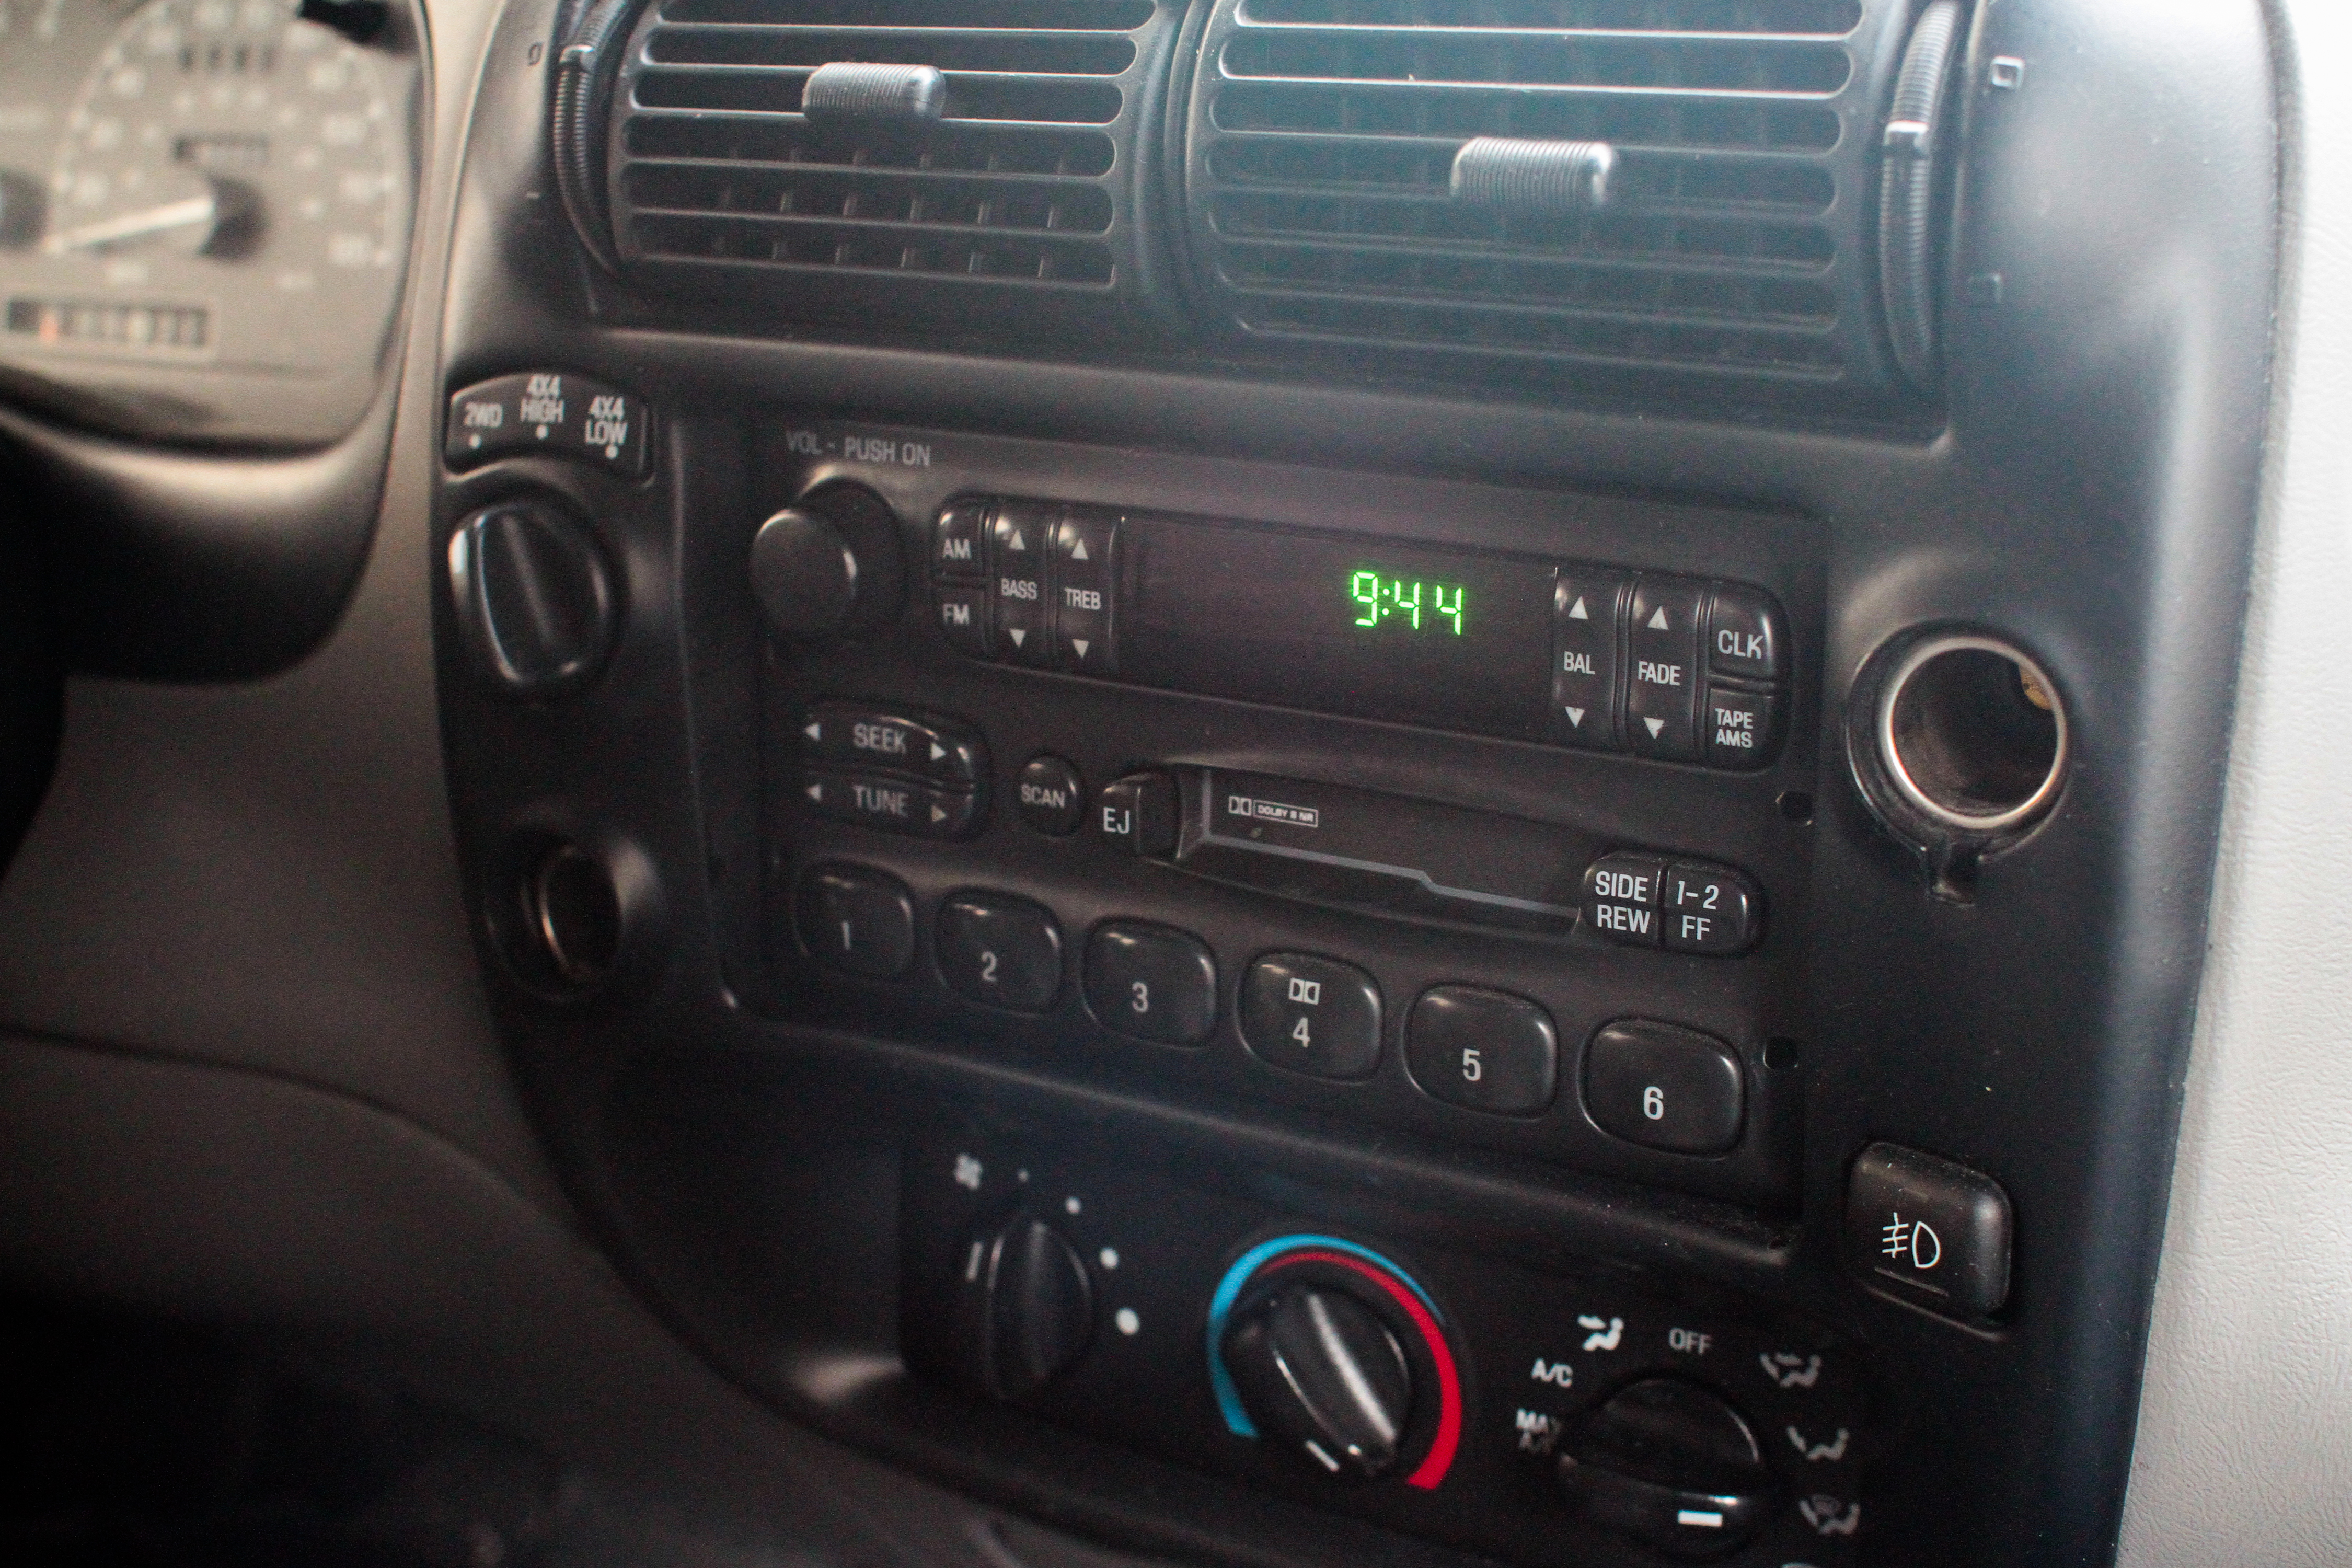 How to Reset the Security Code of a Toyota Factory Stereo | It Still